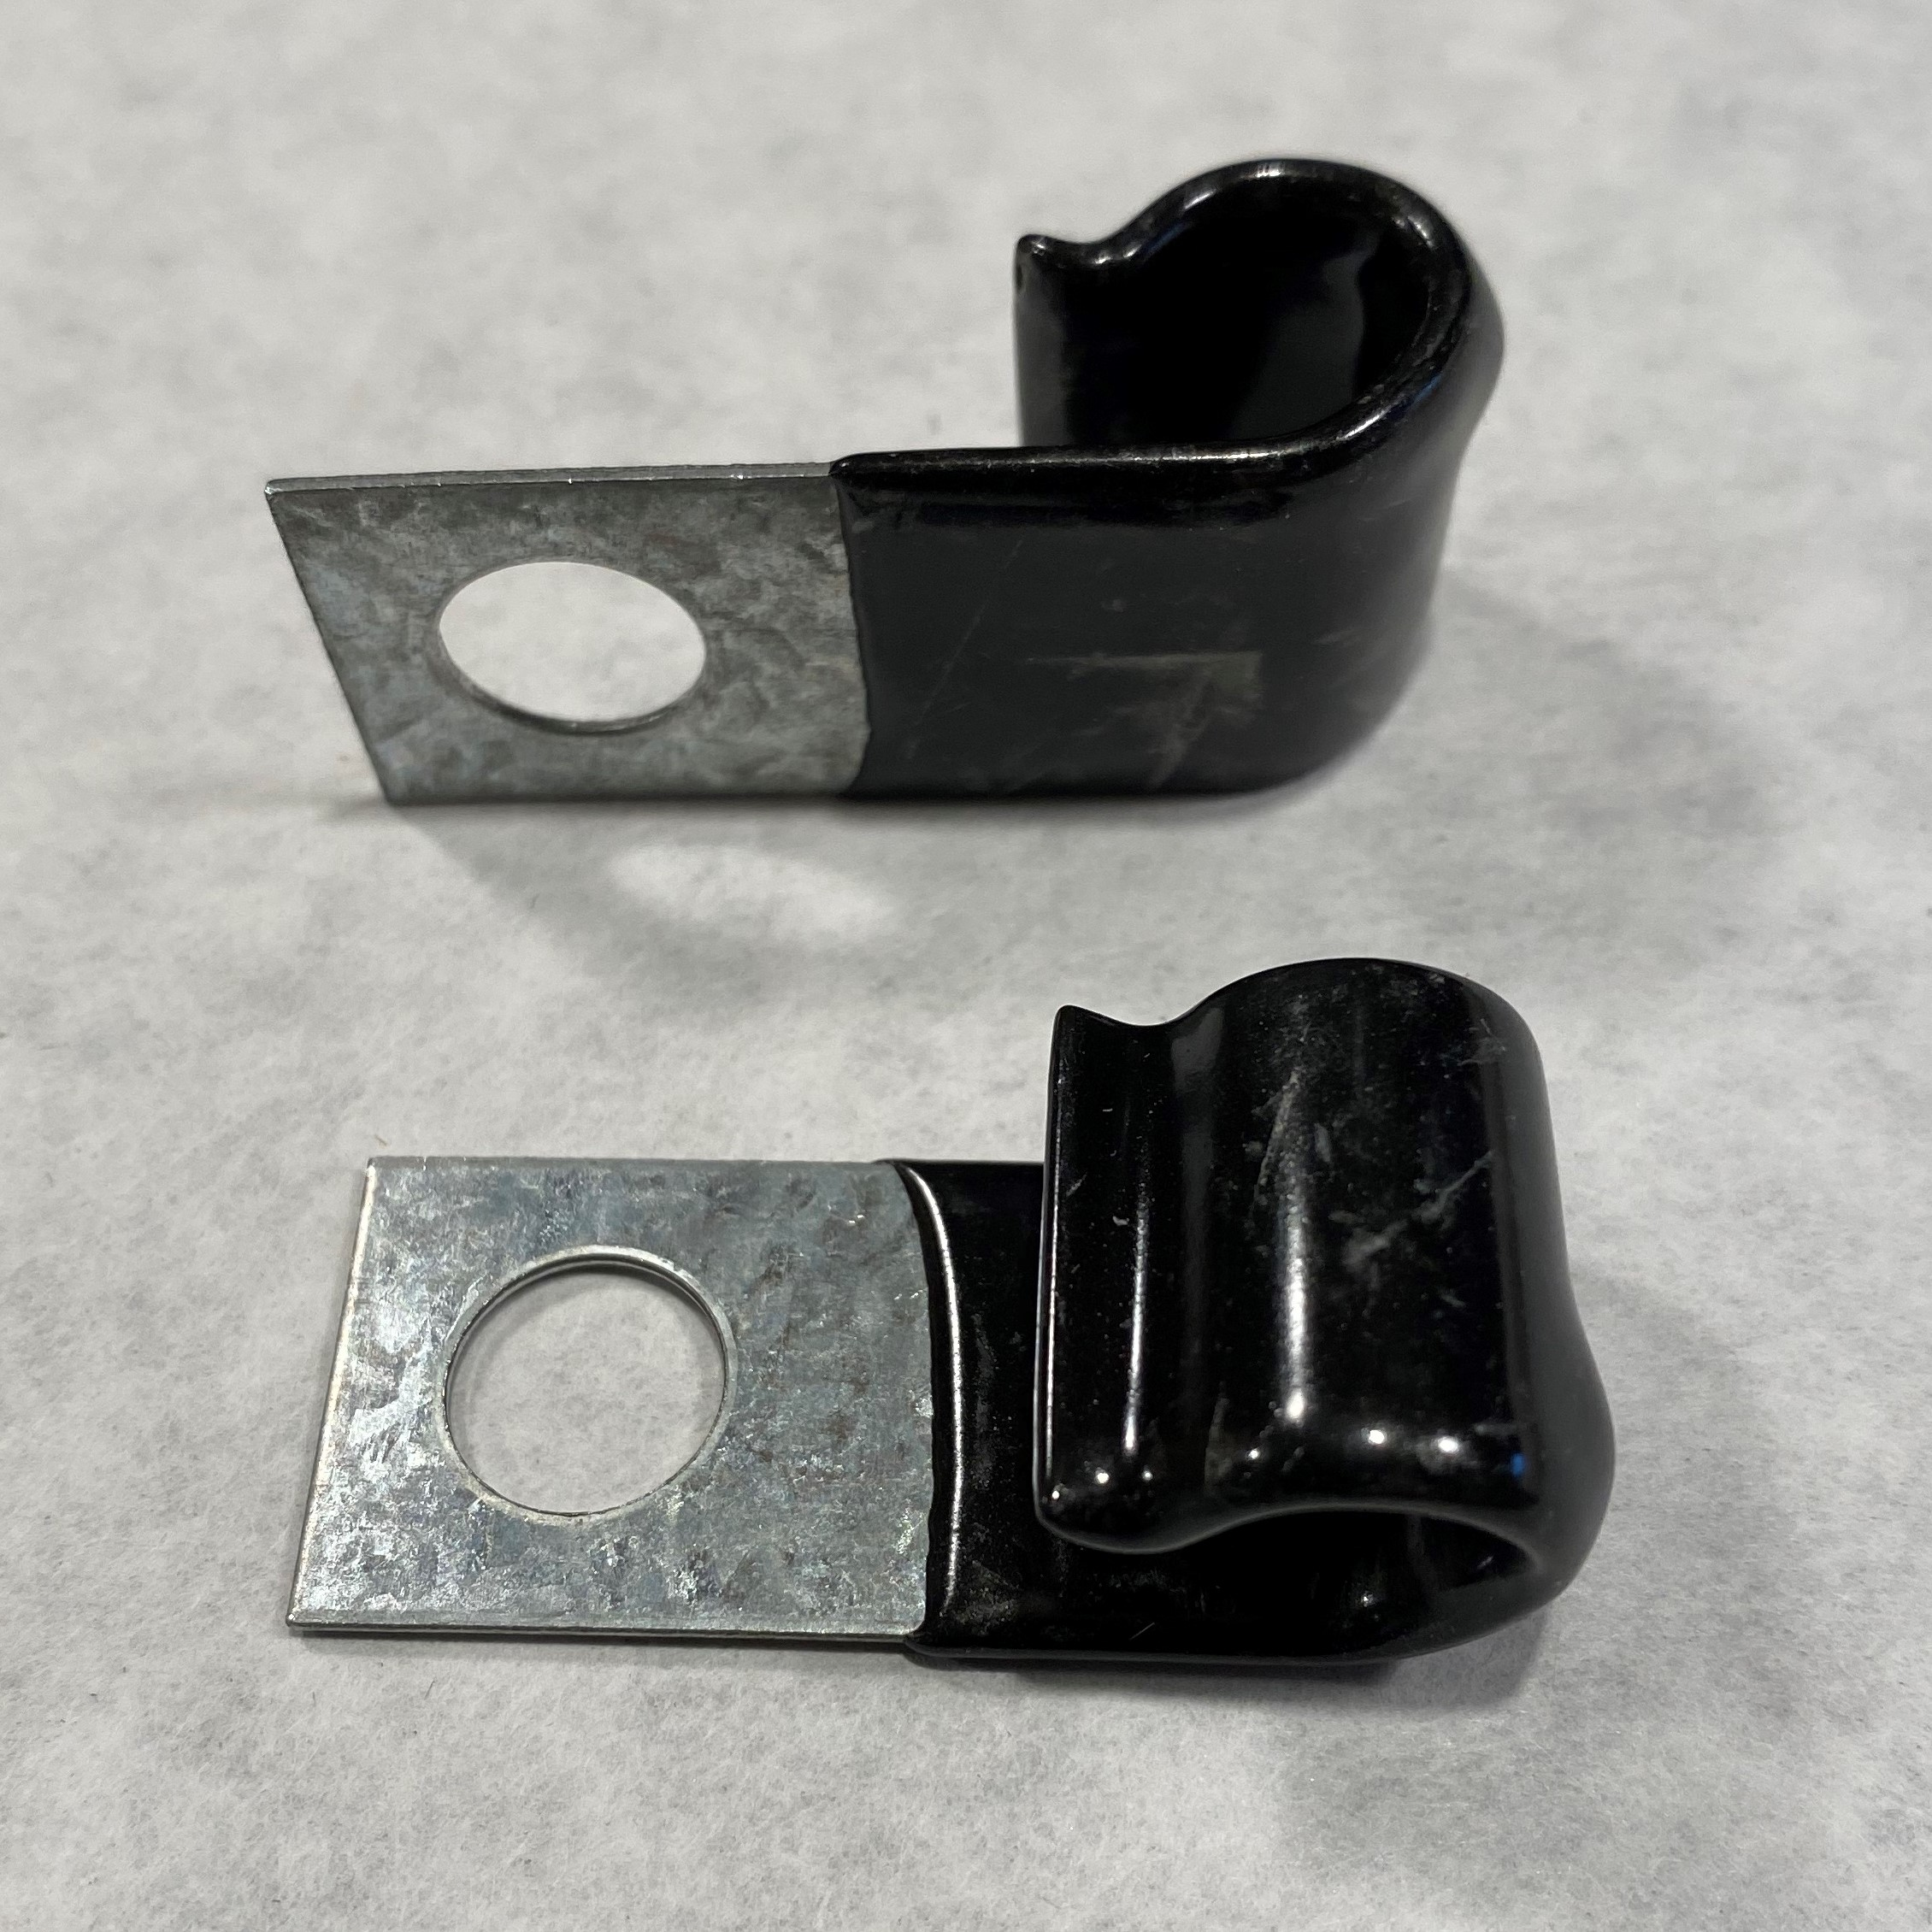 Wiring Harness Insulated Retention Clip 3/8″ – 1 Each